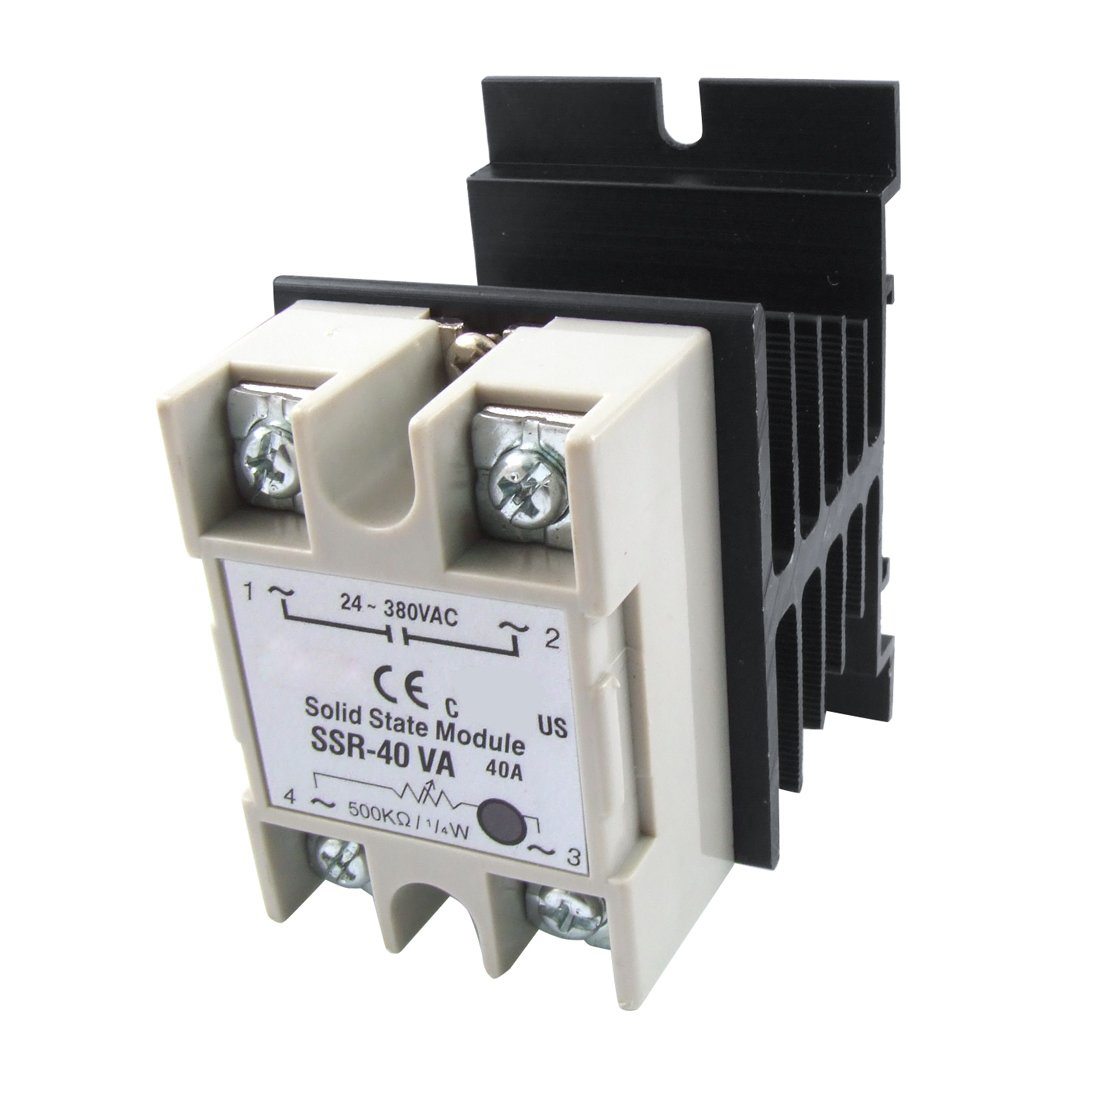 цена на KSOL VolTage Resistance Regulator Solid State Relay SSR 40A 24-380V AC w Heat SInk